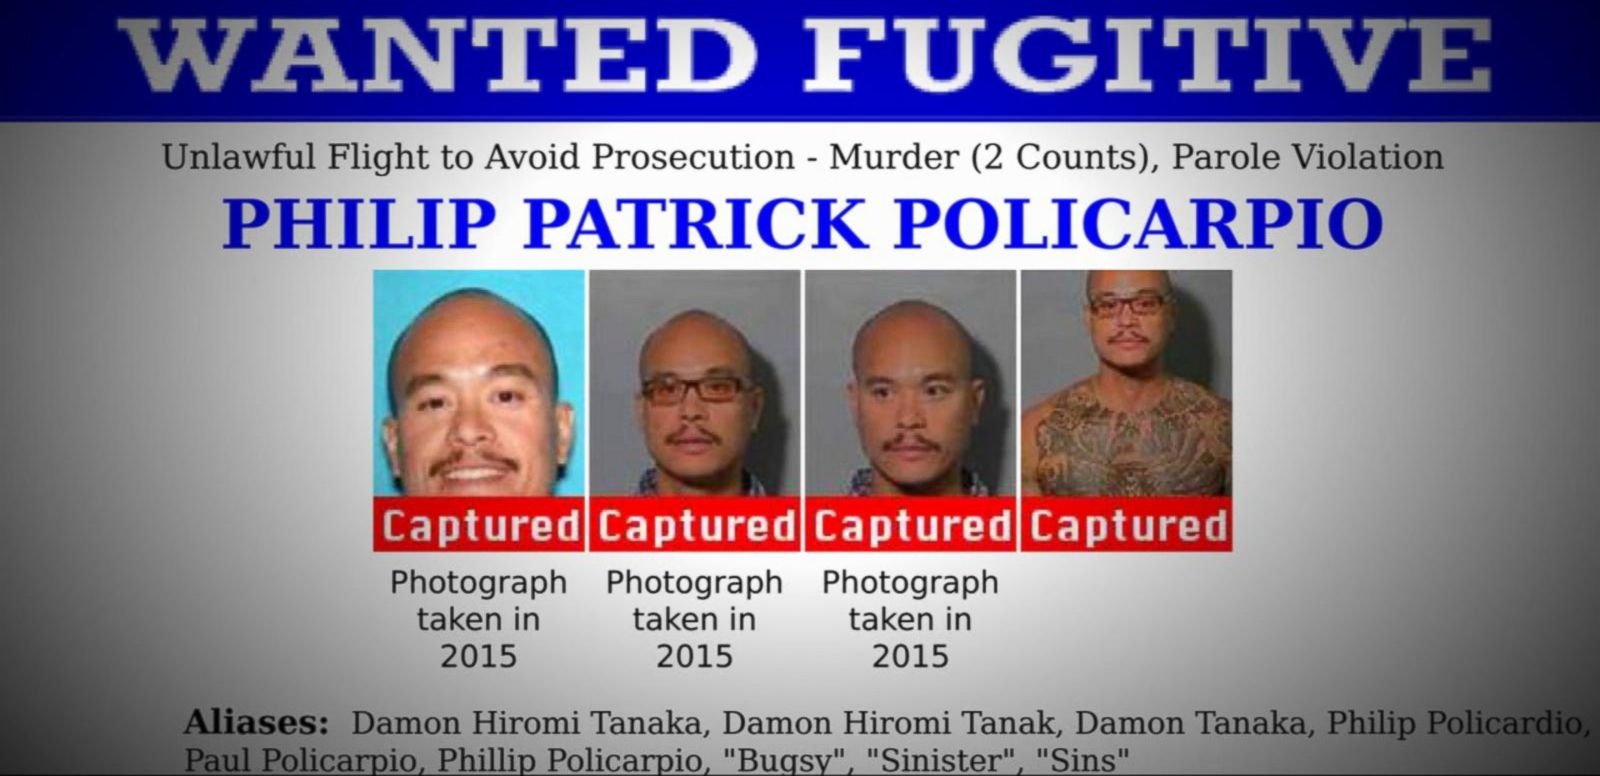 VIDEO: Index: One of the FBI's 10 Most Wanted Fugitives Philip Patrick Policarpio Captured